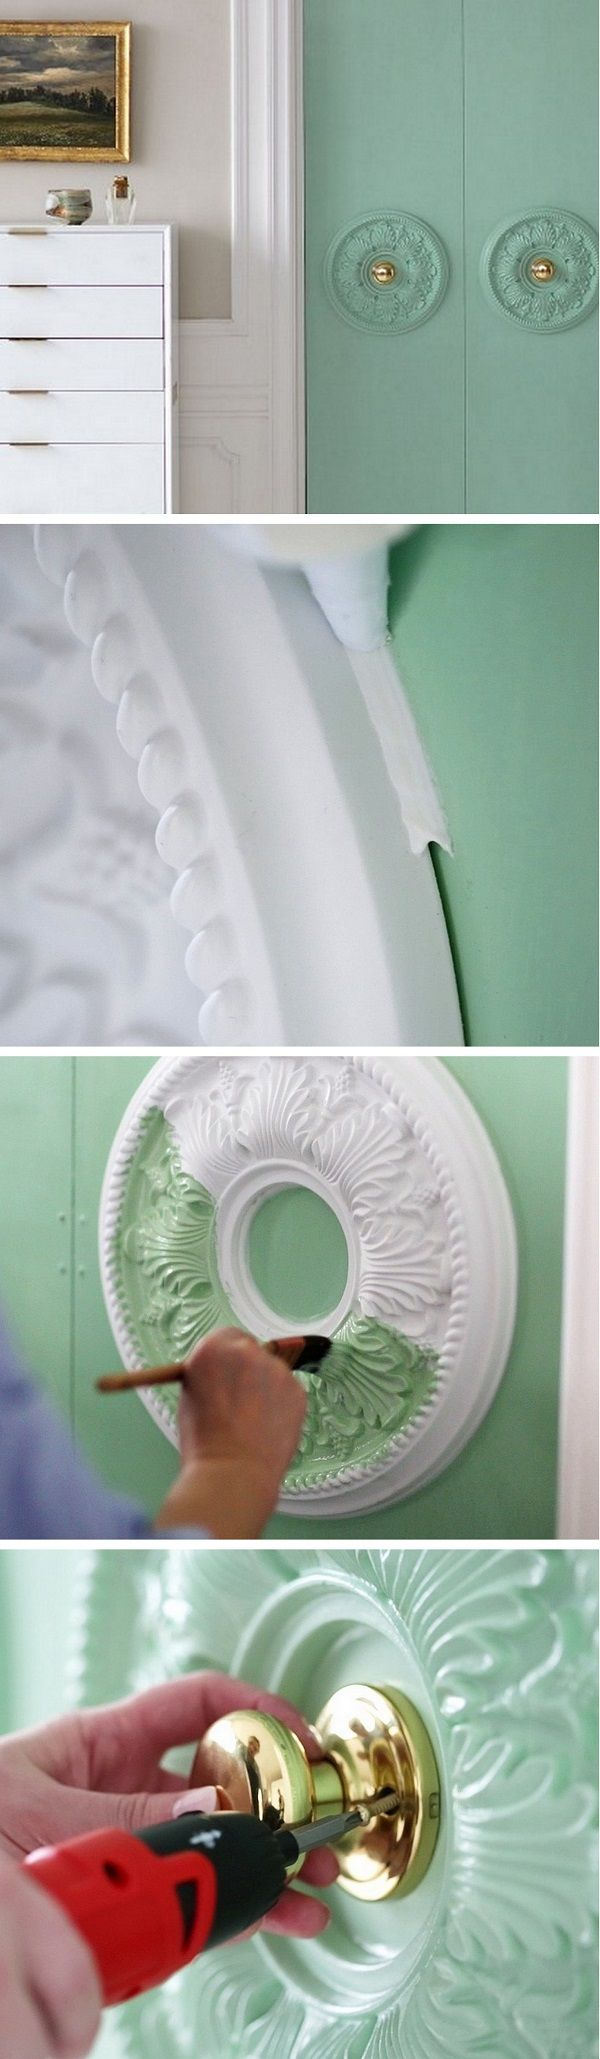 Check out the tutorial how to make DIY door embellishments with ceiling medallions @istandarddesign